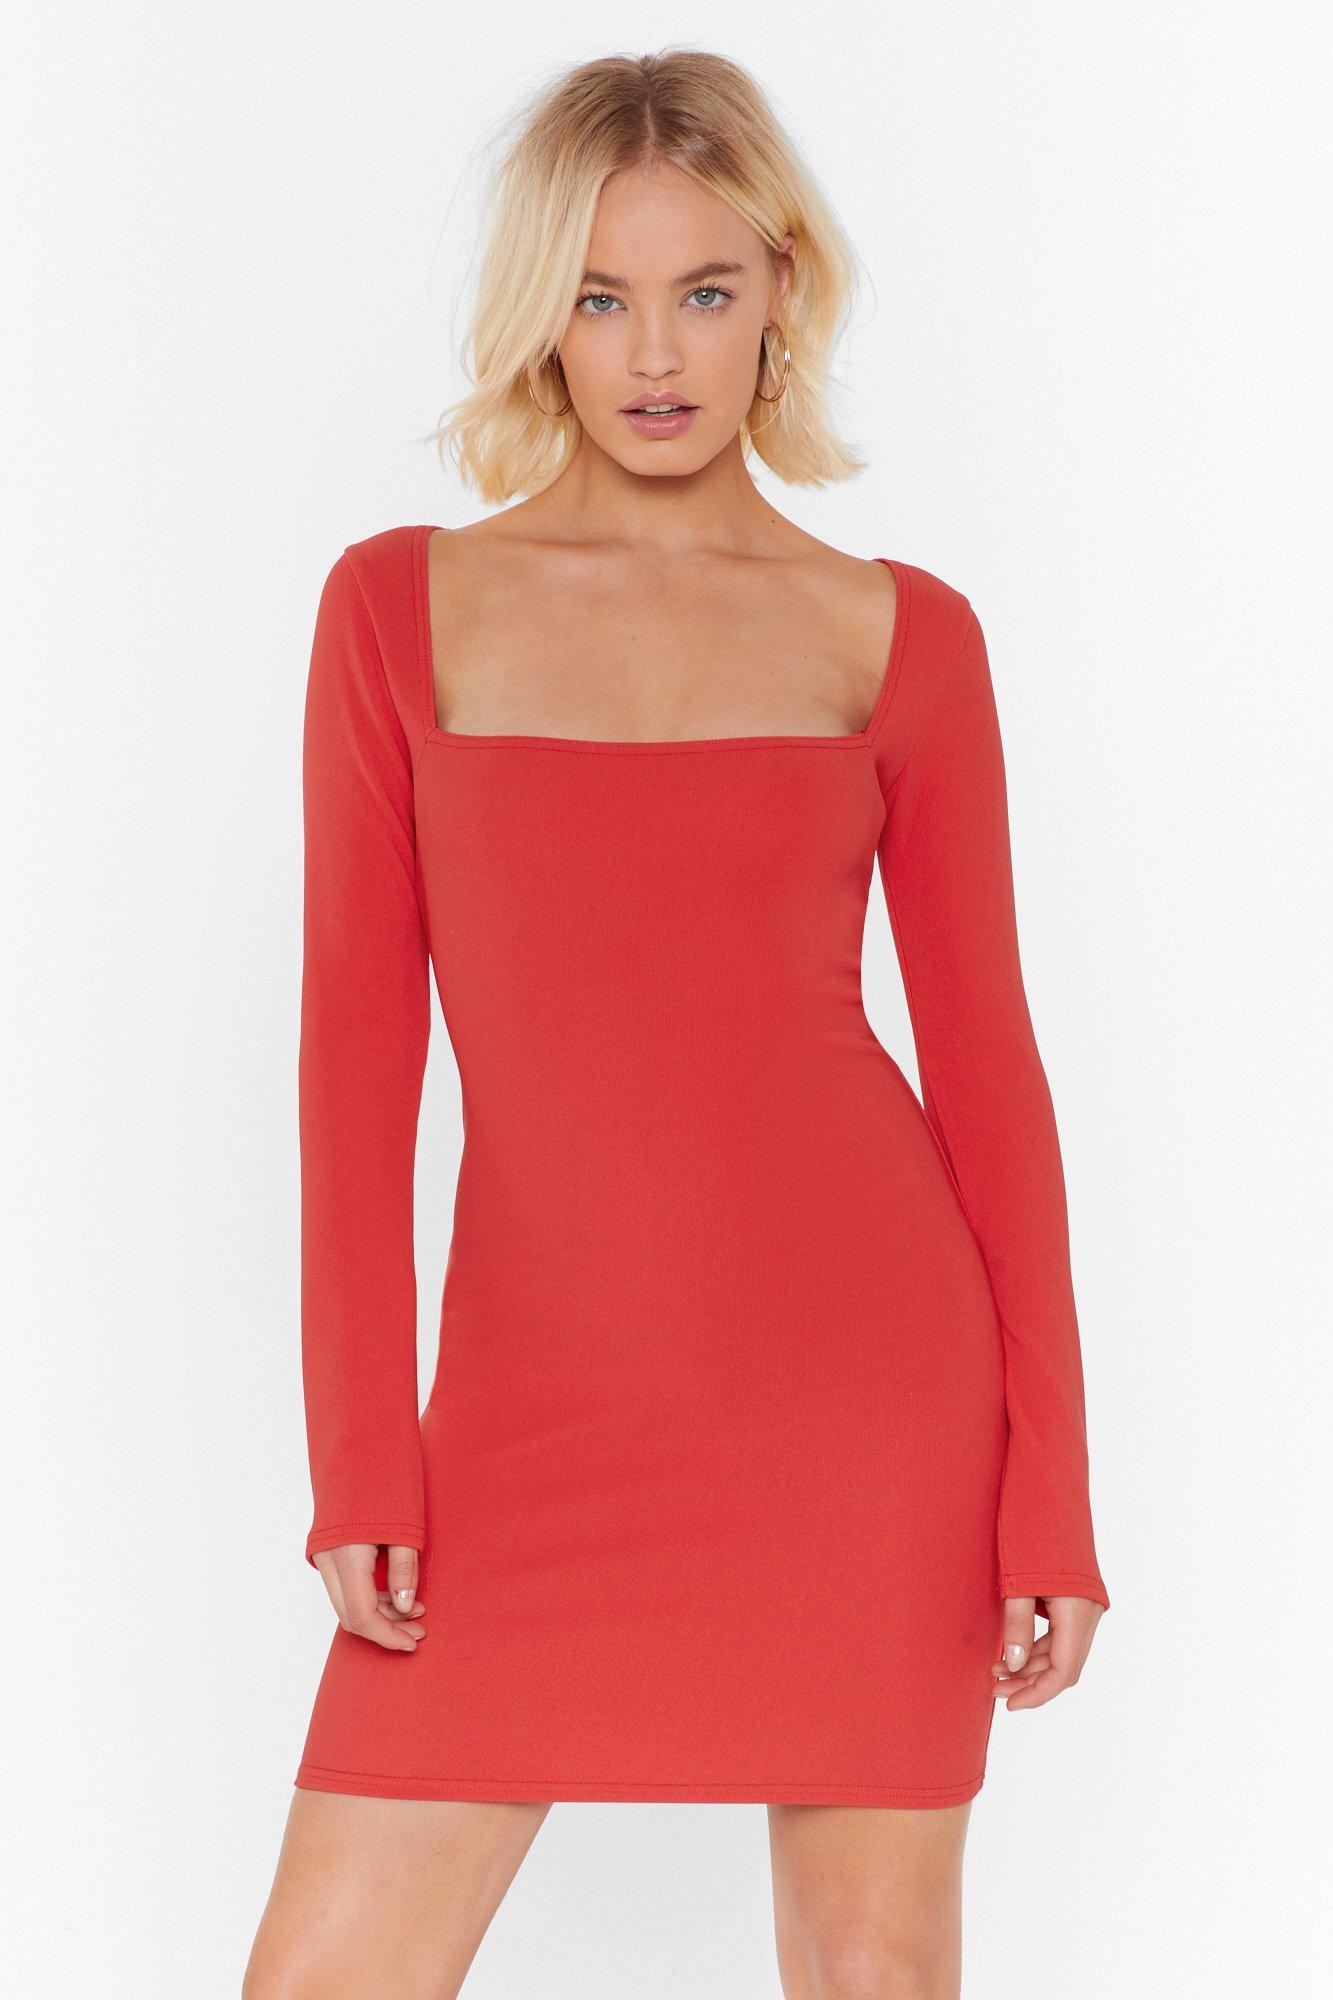 Image of For All You Square Ribbed Mini Dress